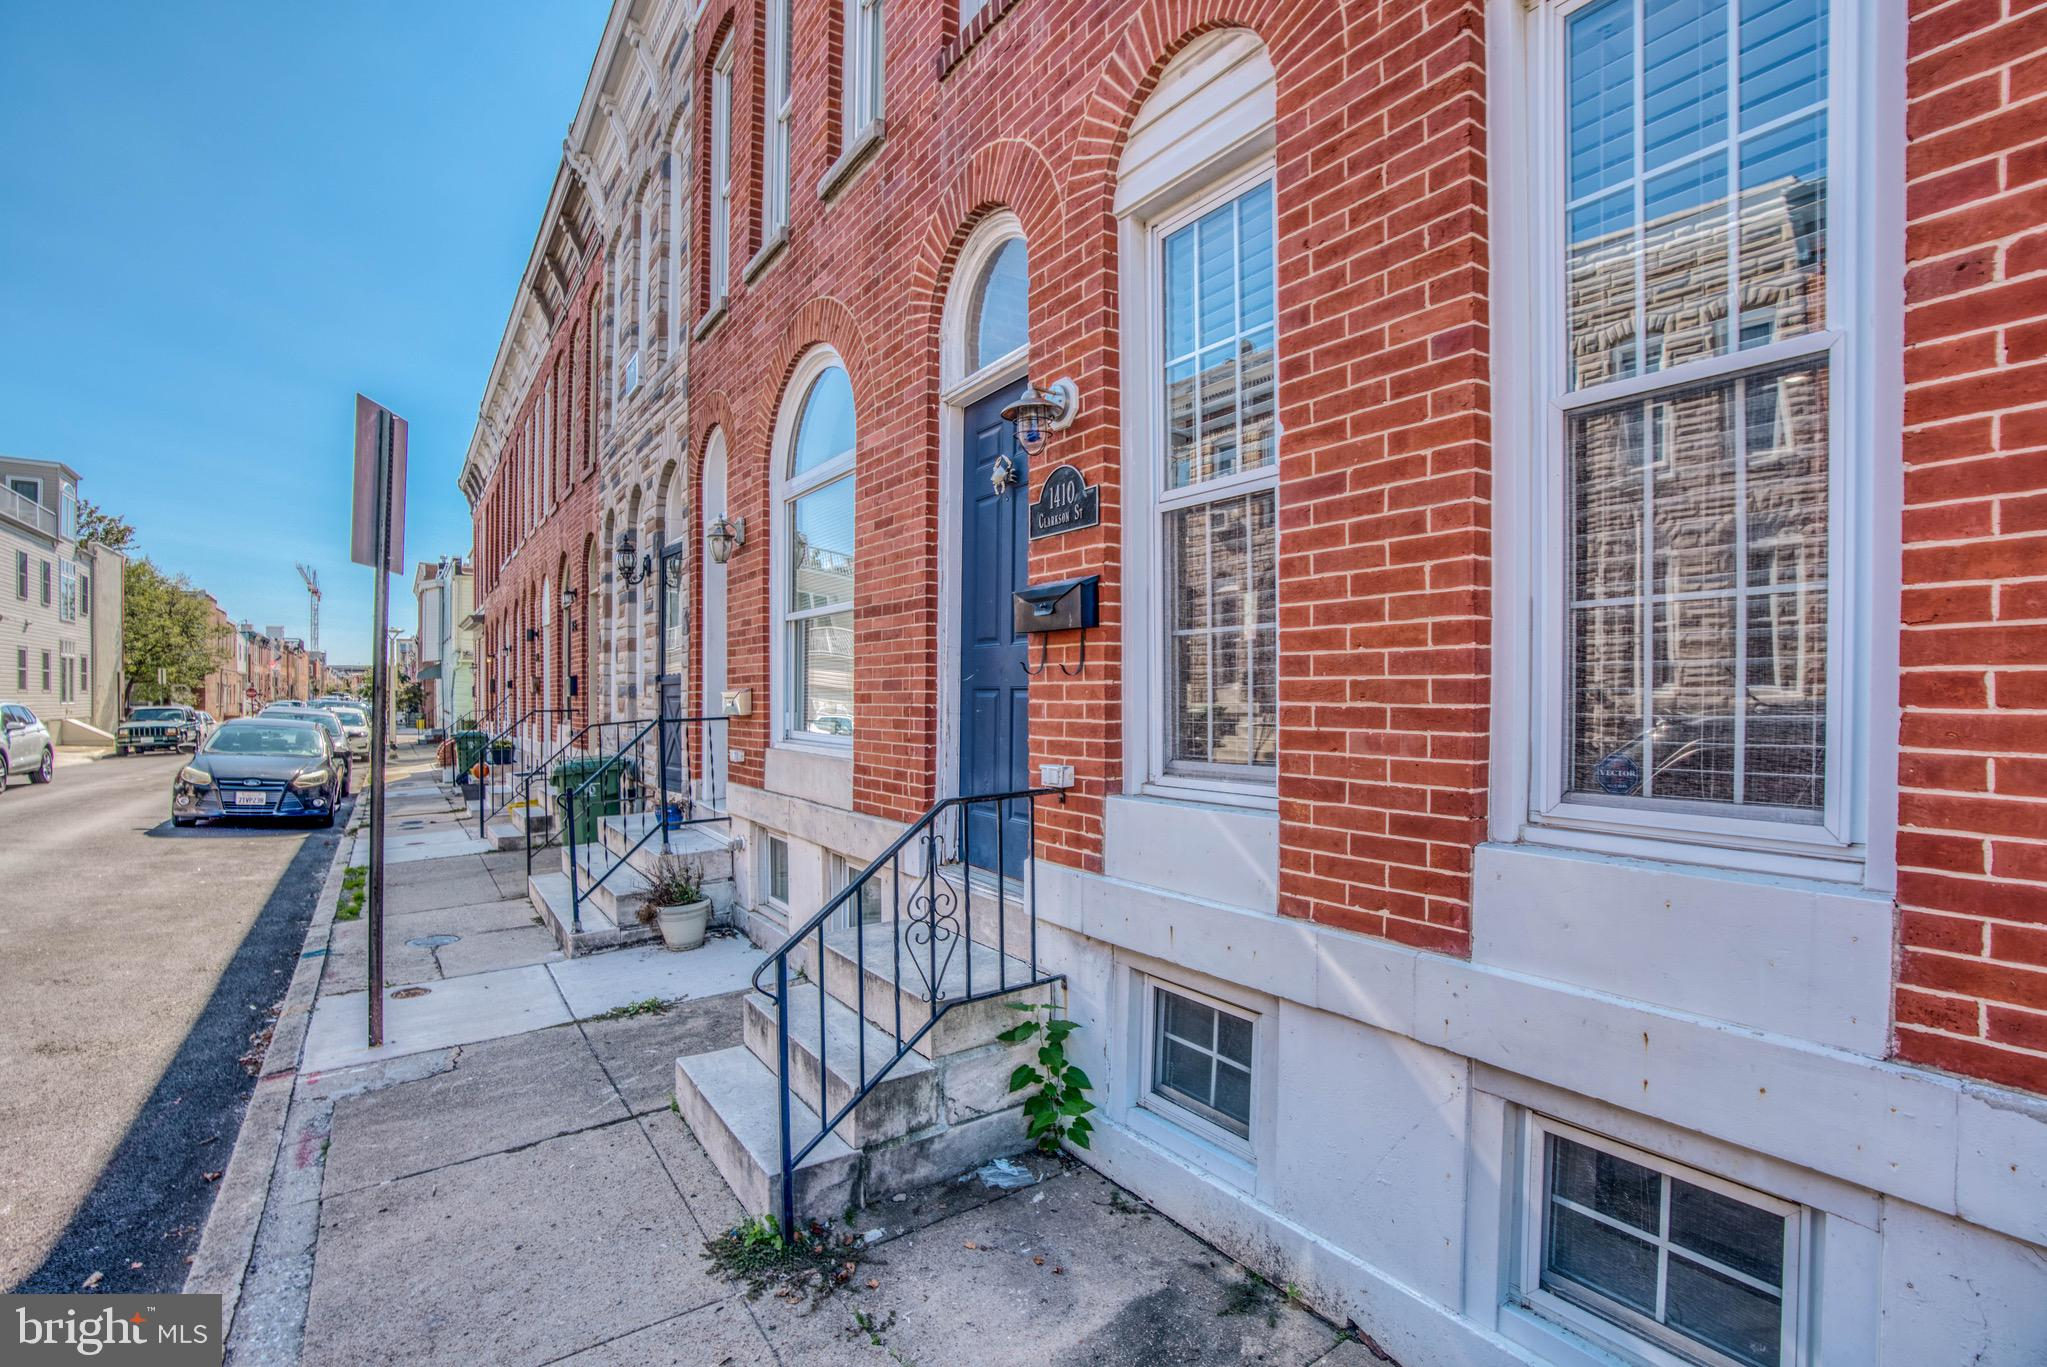 Great three level, three bedroom, two full bath row home right near the heart of Federal Hill on the 1400 block of Clarkson Street.  House is freshly painted and stylishly appointed.  Basement is fully finished with a bedroom and bonus room.  Ceilings are high and house boasts exposed brick and an open floor plan.  House has plenty of storage areas as all extra space has been turned into closets and nooks. There is a deck off the second floor back bedroom that sits over the bricked, fenced  in patio.  A must see!